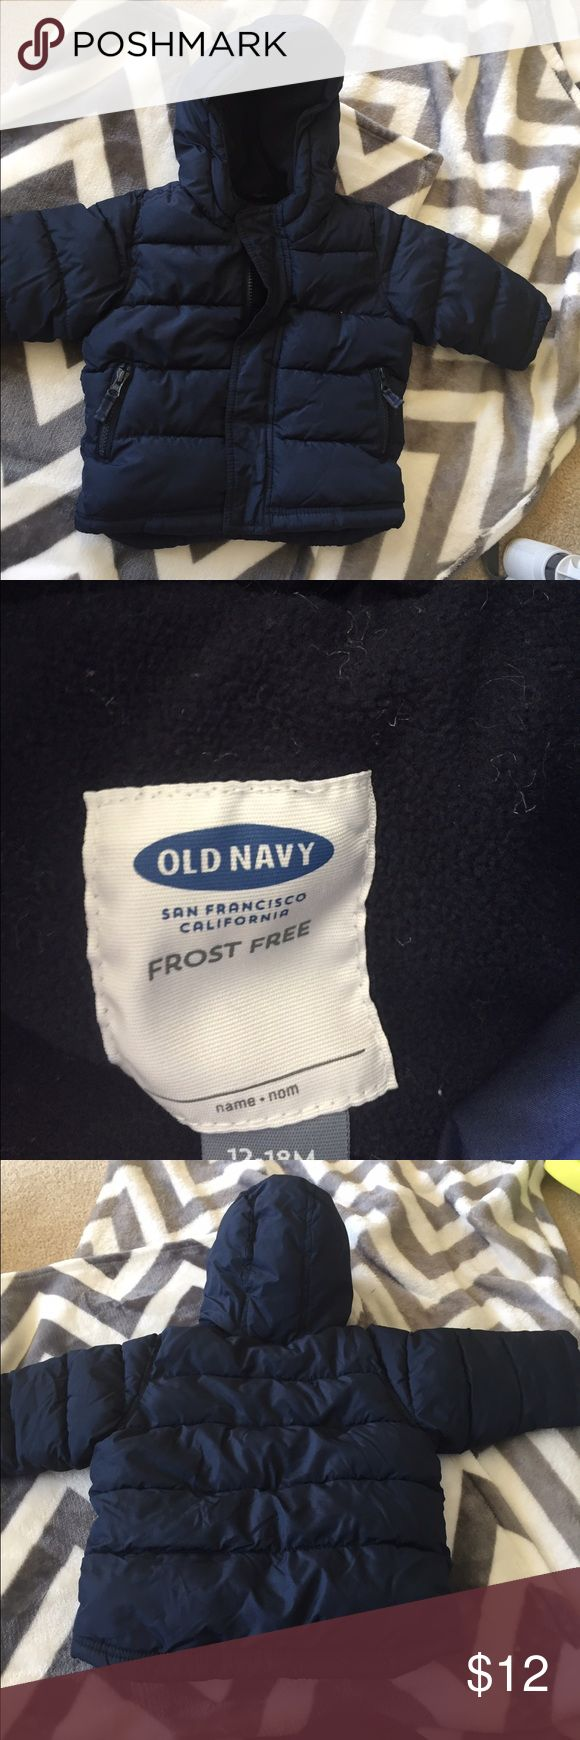 Old navy coat size 12-18 months Gently used-no defects! Very warm :) navy color. Old Navy Jackets & Coats Puffers